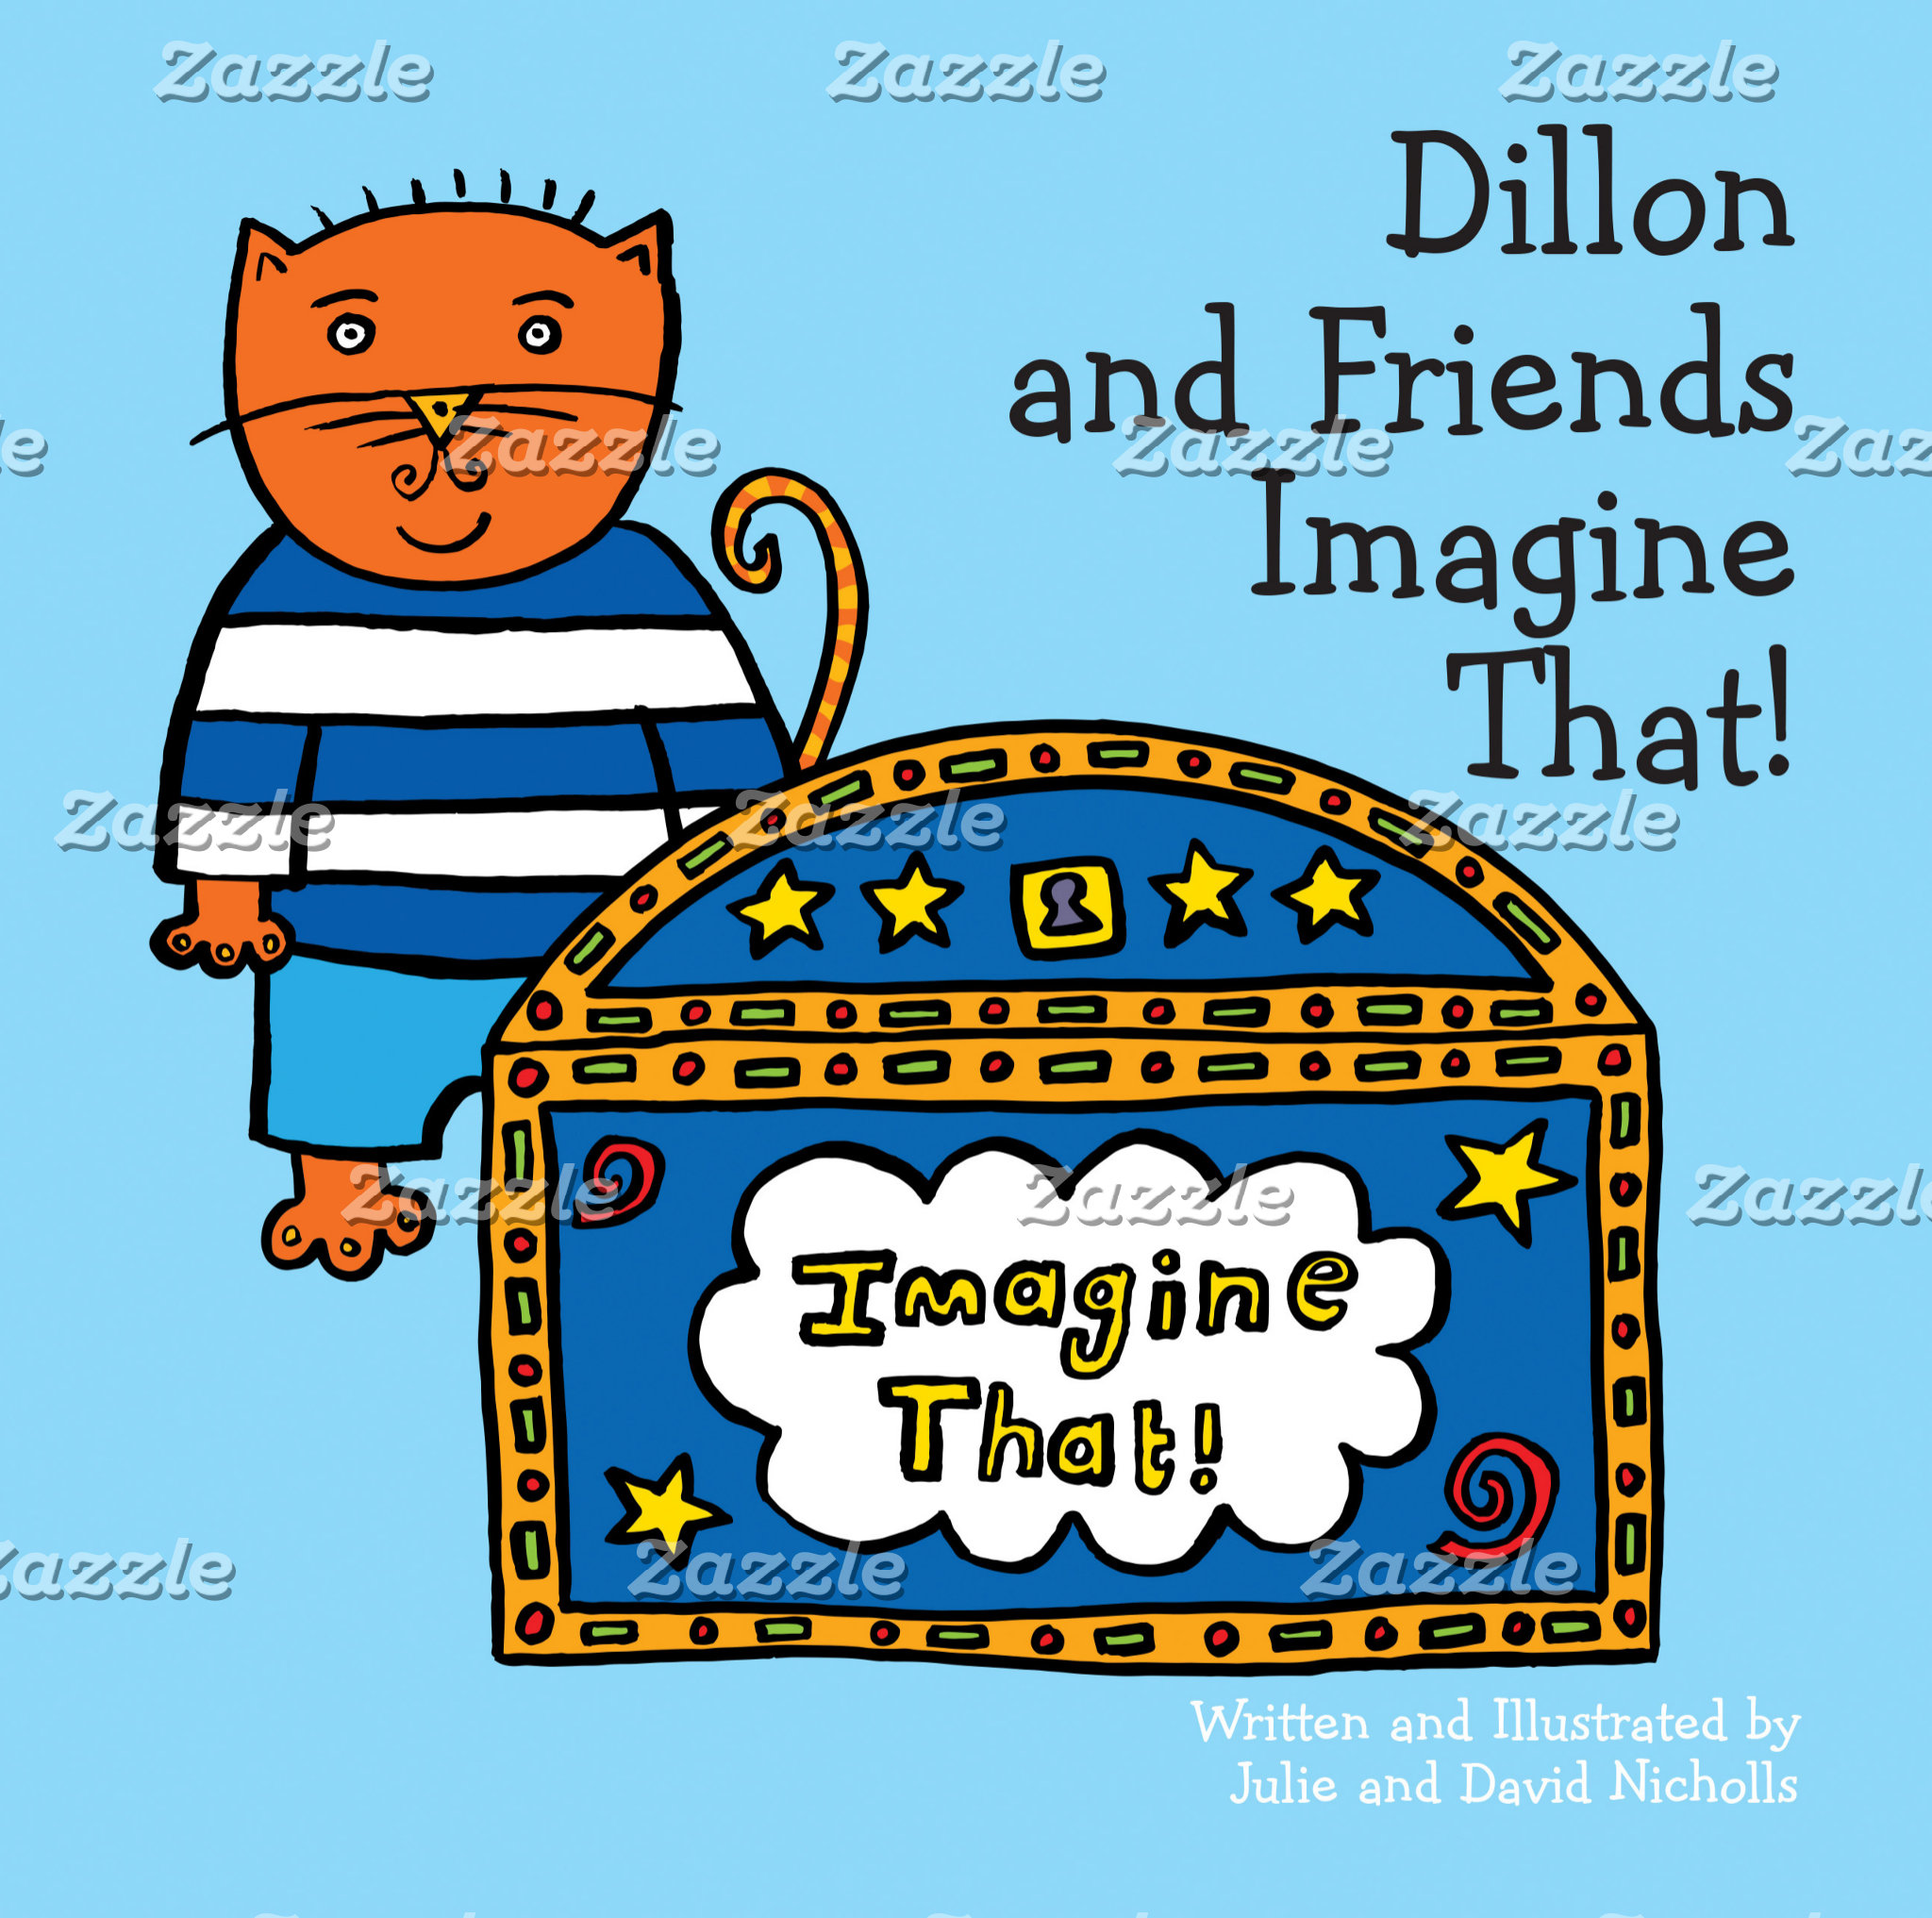 Dillon and Friends Imagine That!